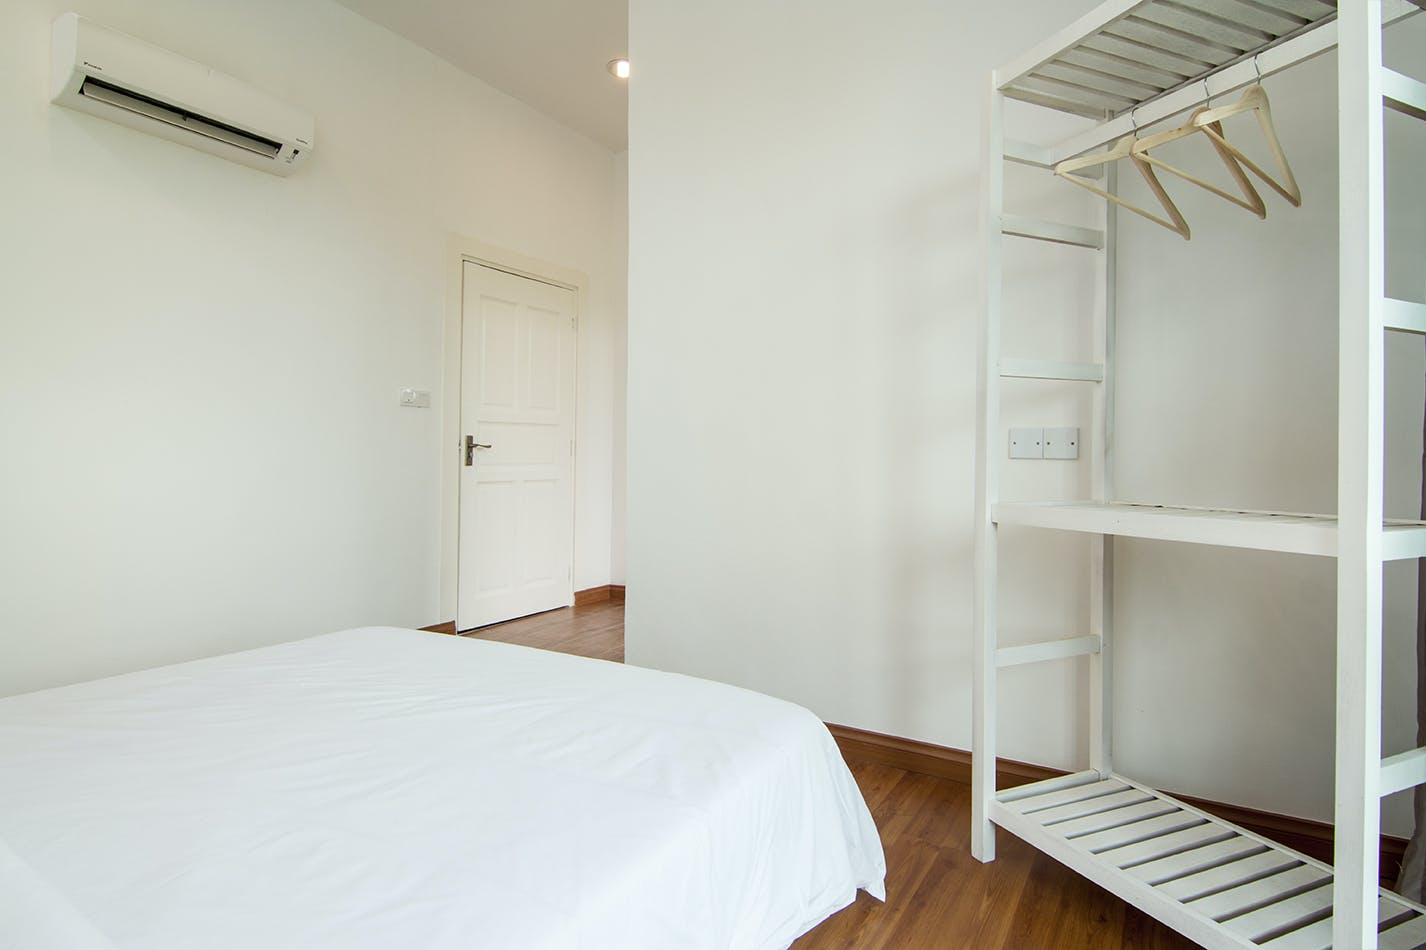 Spacious double room and bright rooms with en suite bathrooms and fully air-conditioned